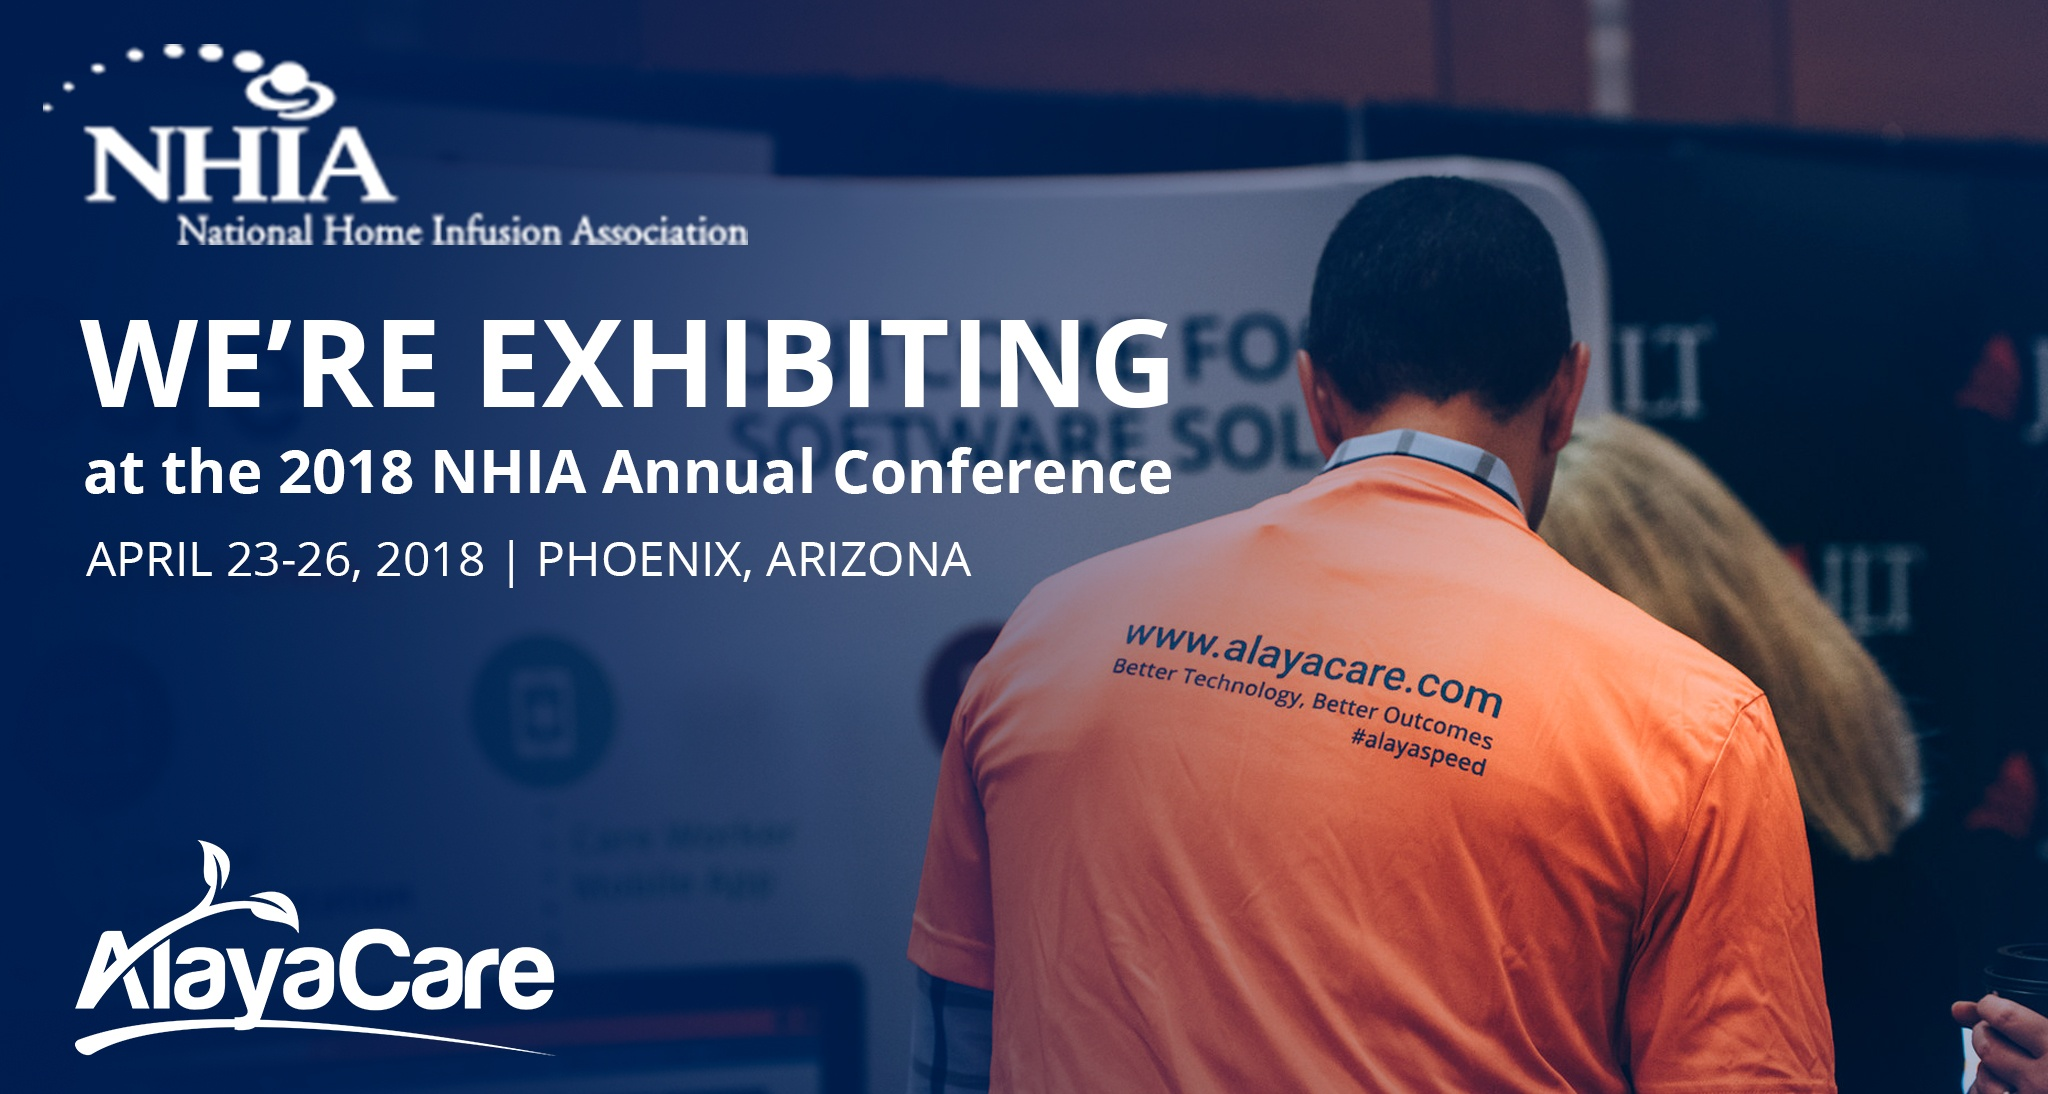 AlayaCare Joins NHIA Annual Conference for First Time